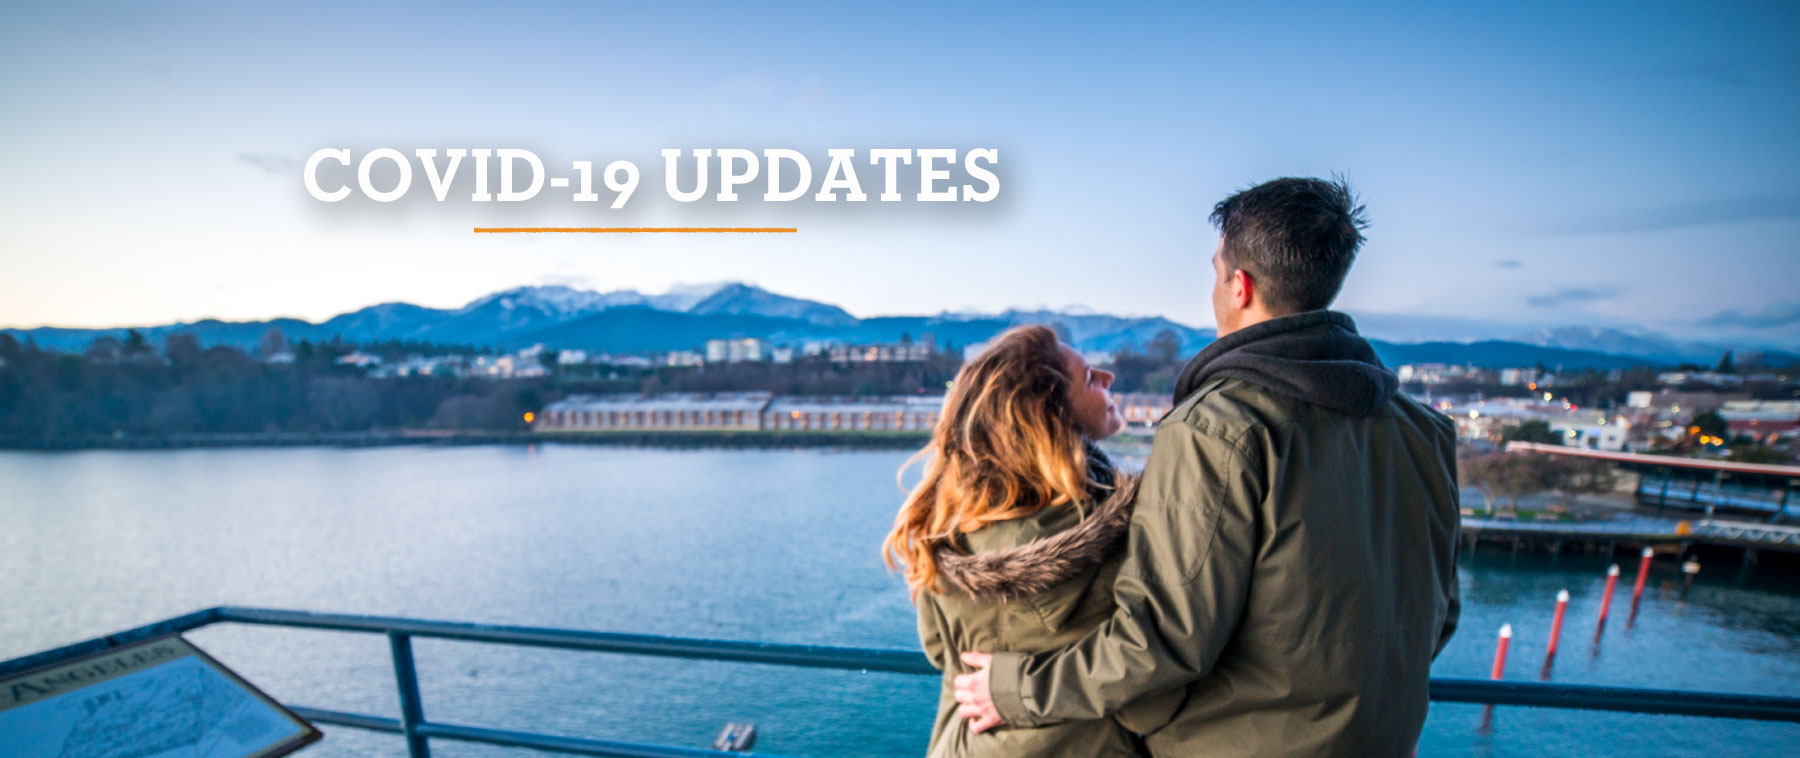 COVID-19 Virus Update from Visit Port Angeles - Resources & Business Information